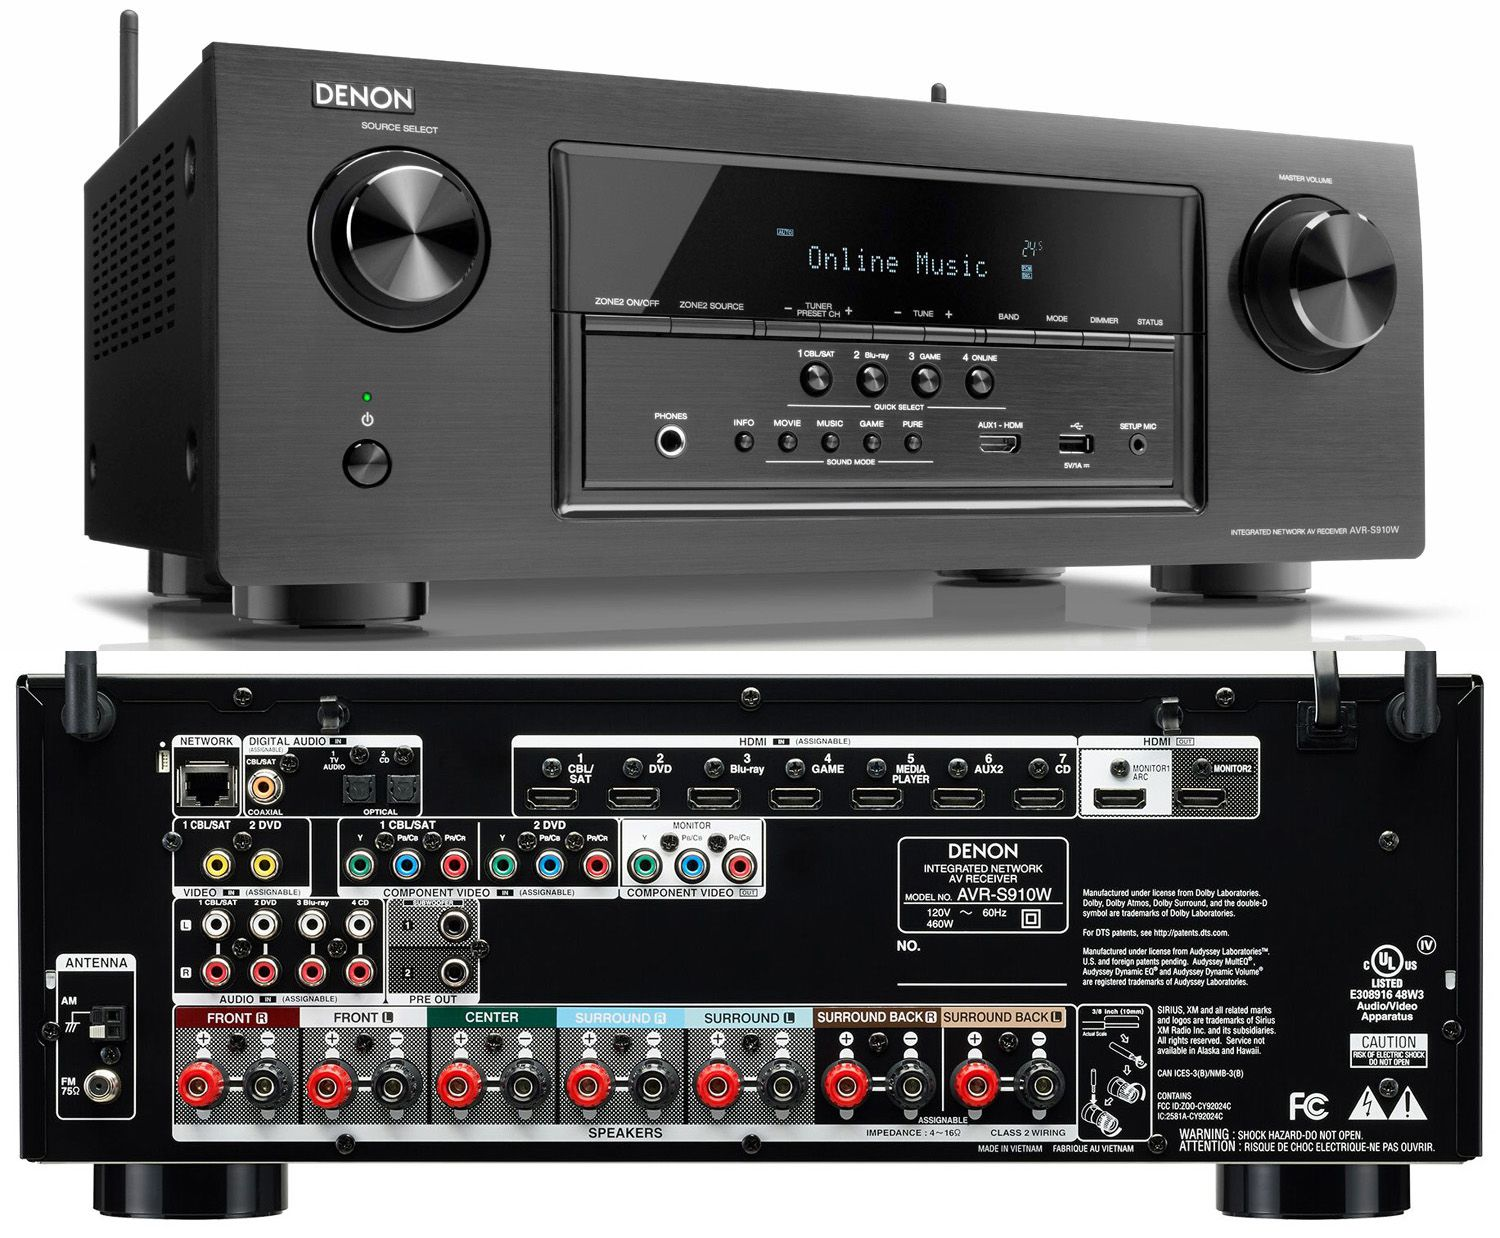 denon unveils avr s710w and avr s910w s series receivers. Black Bedroom Furniture Sets. Home Design Ideas